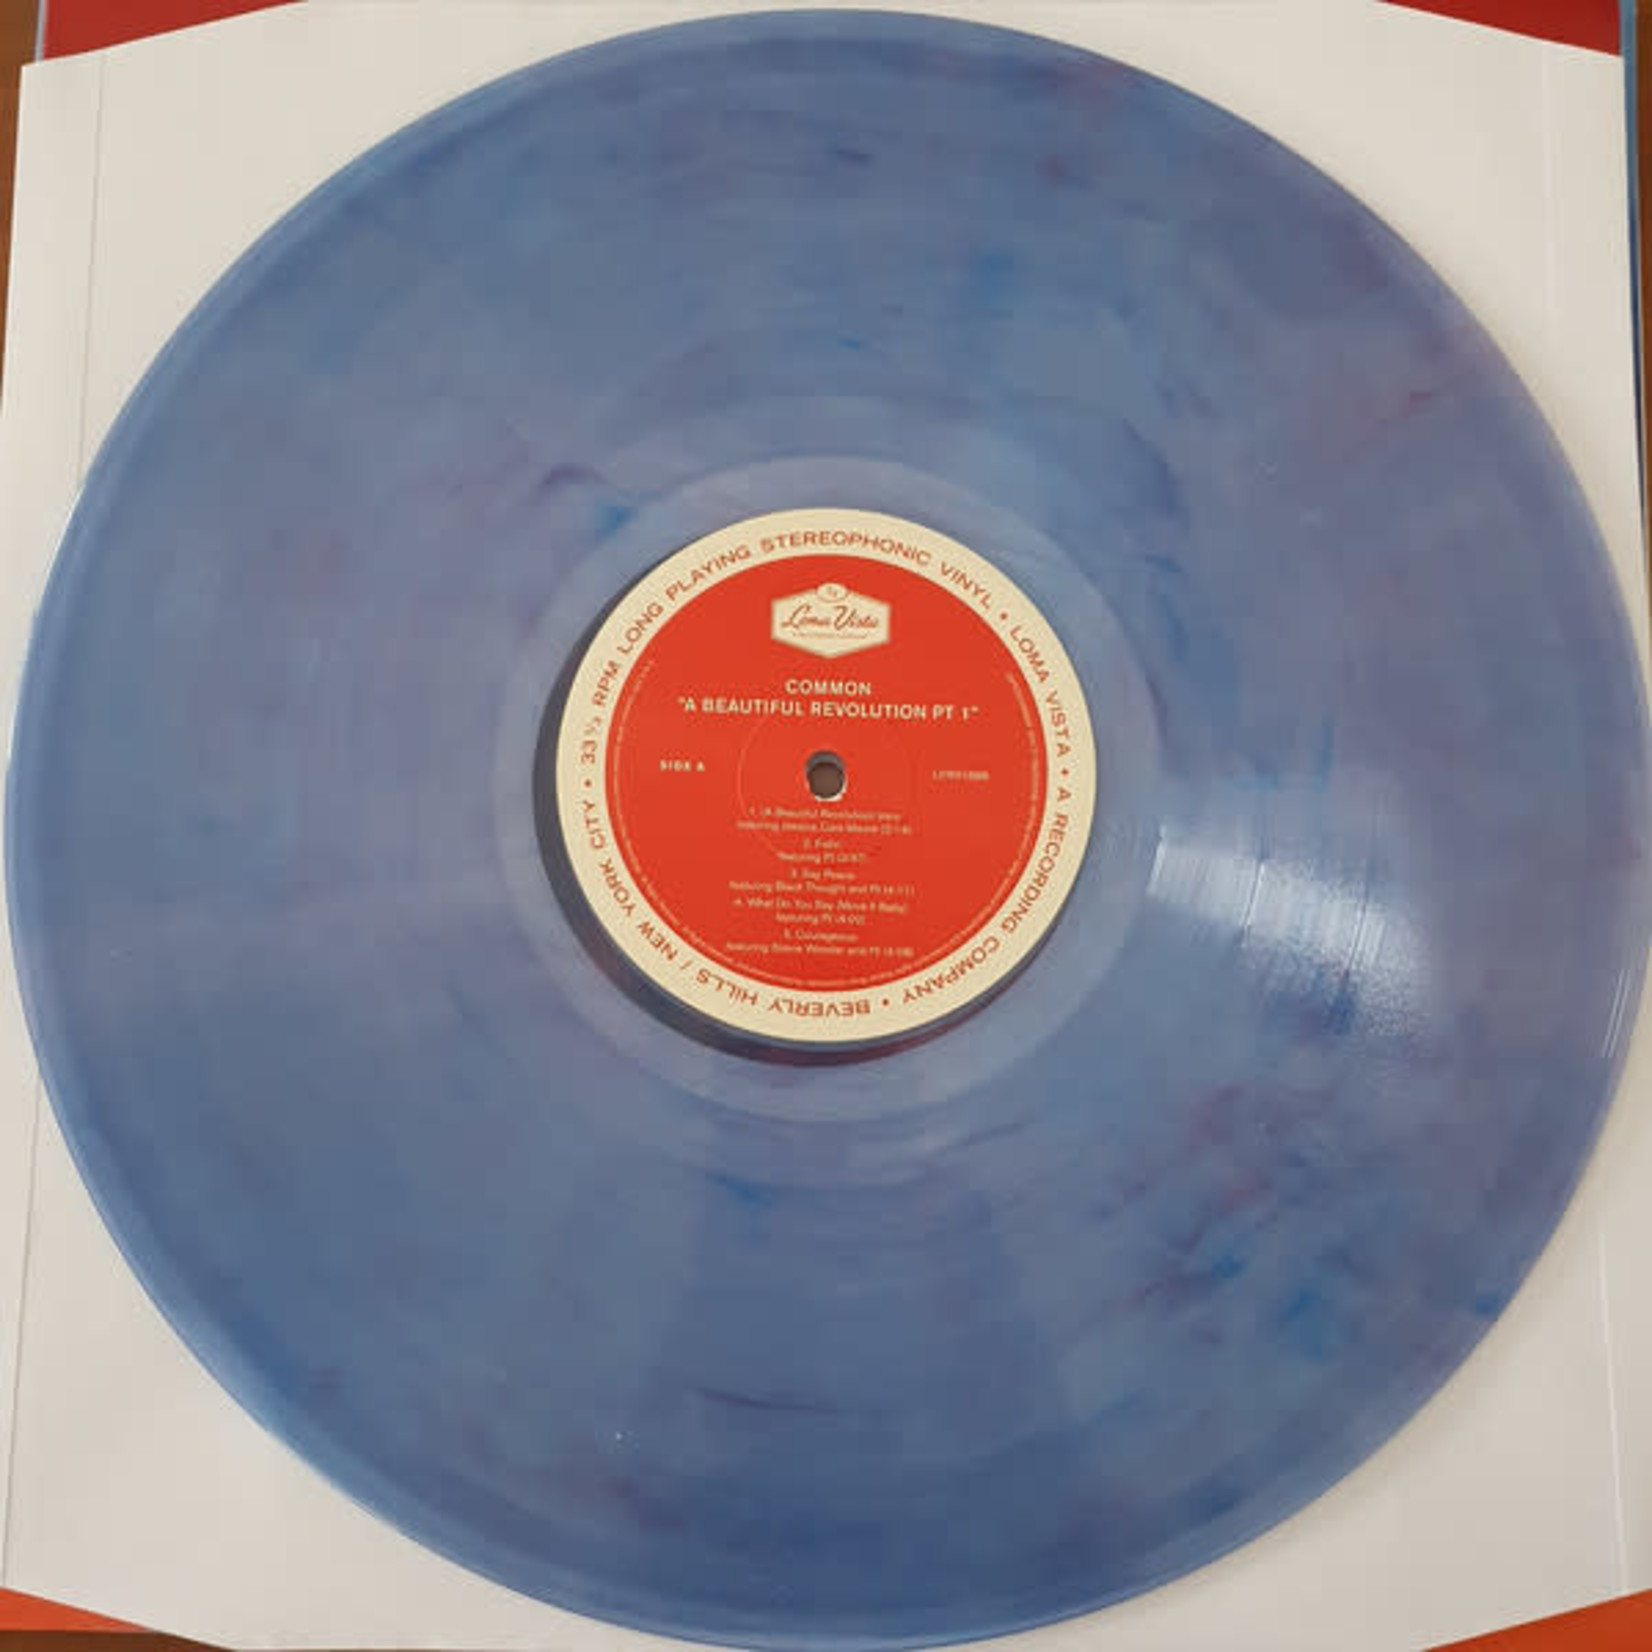 COMMON A BEAUTIFUL REVOLUTION PT. 1  CLEAR W/ RED WHITE AND BLUE MARBLE LP